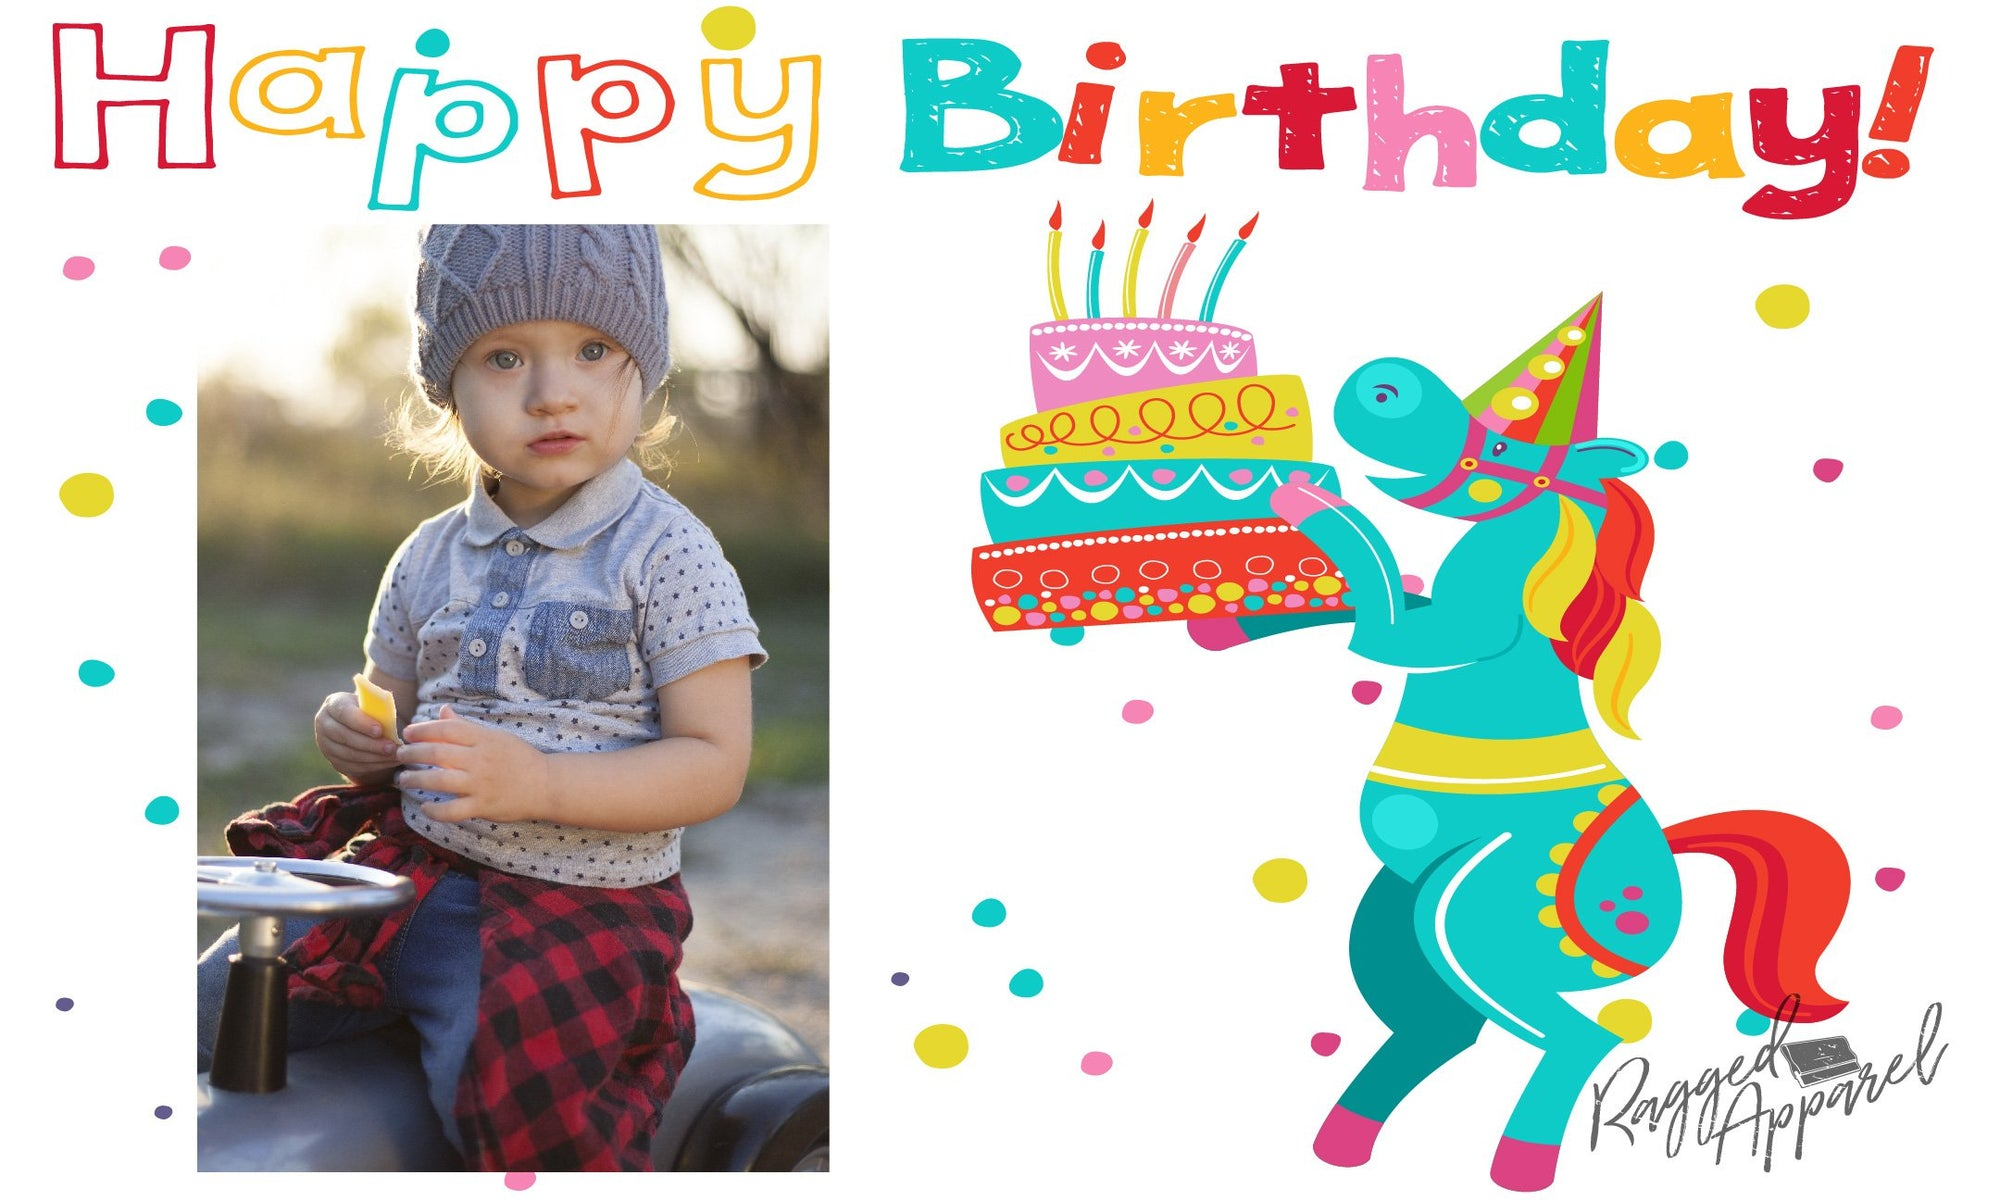 Kids Photo Birthday Banner With Horse - Ragged Apparel Screen Printing and Signs - www.nmshirts.com